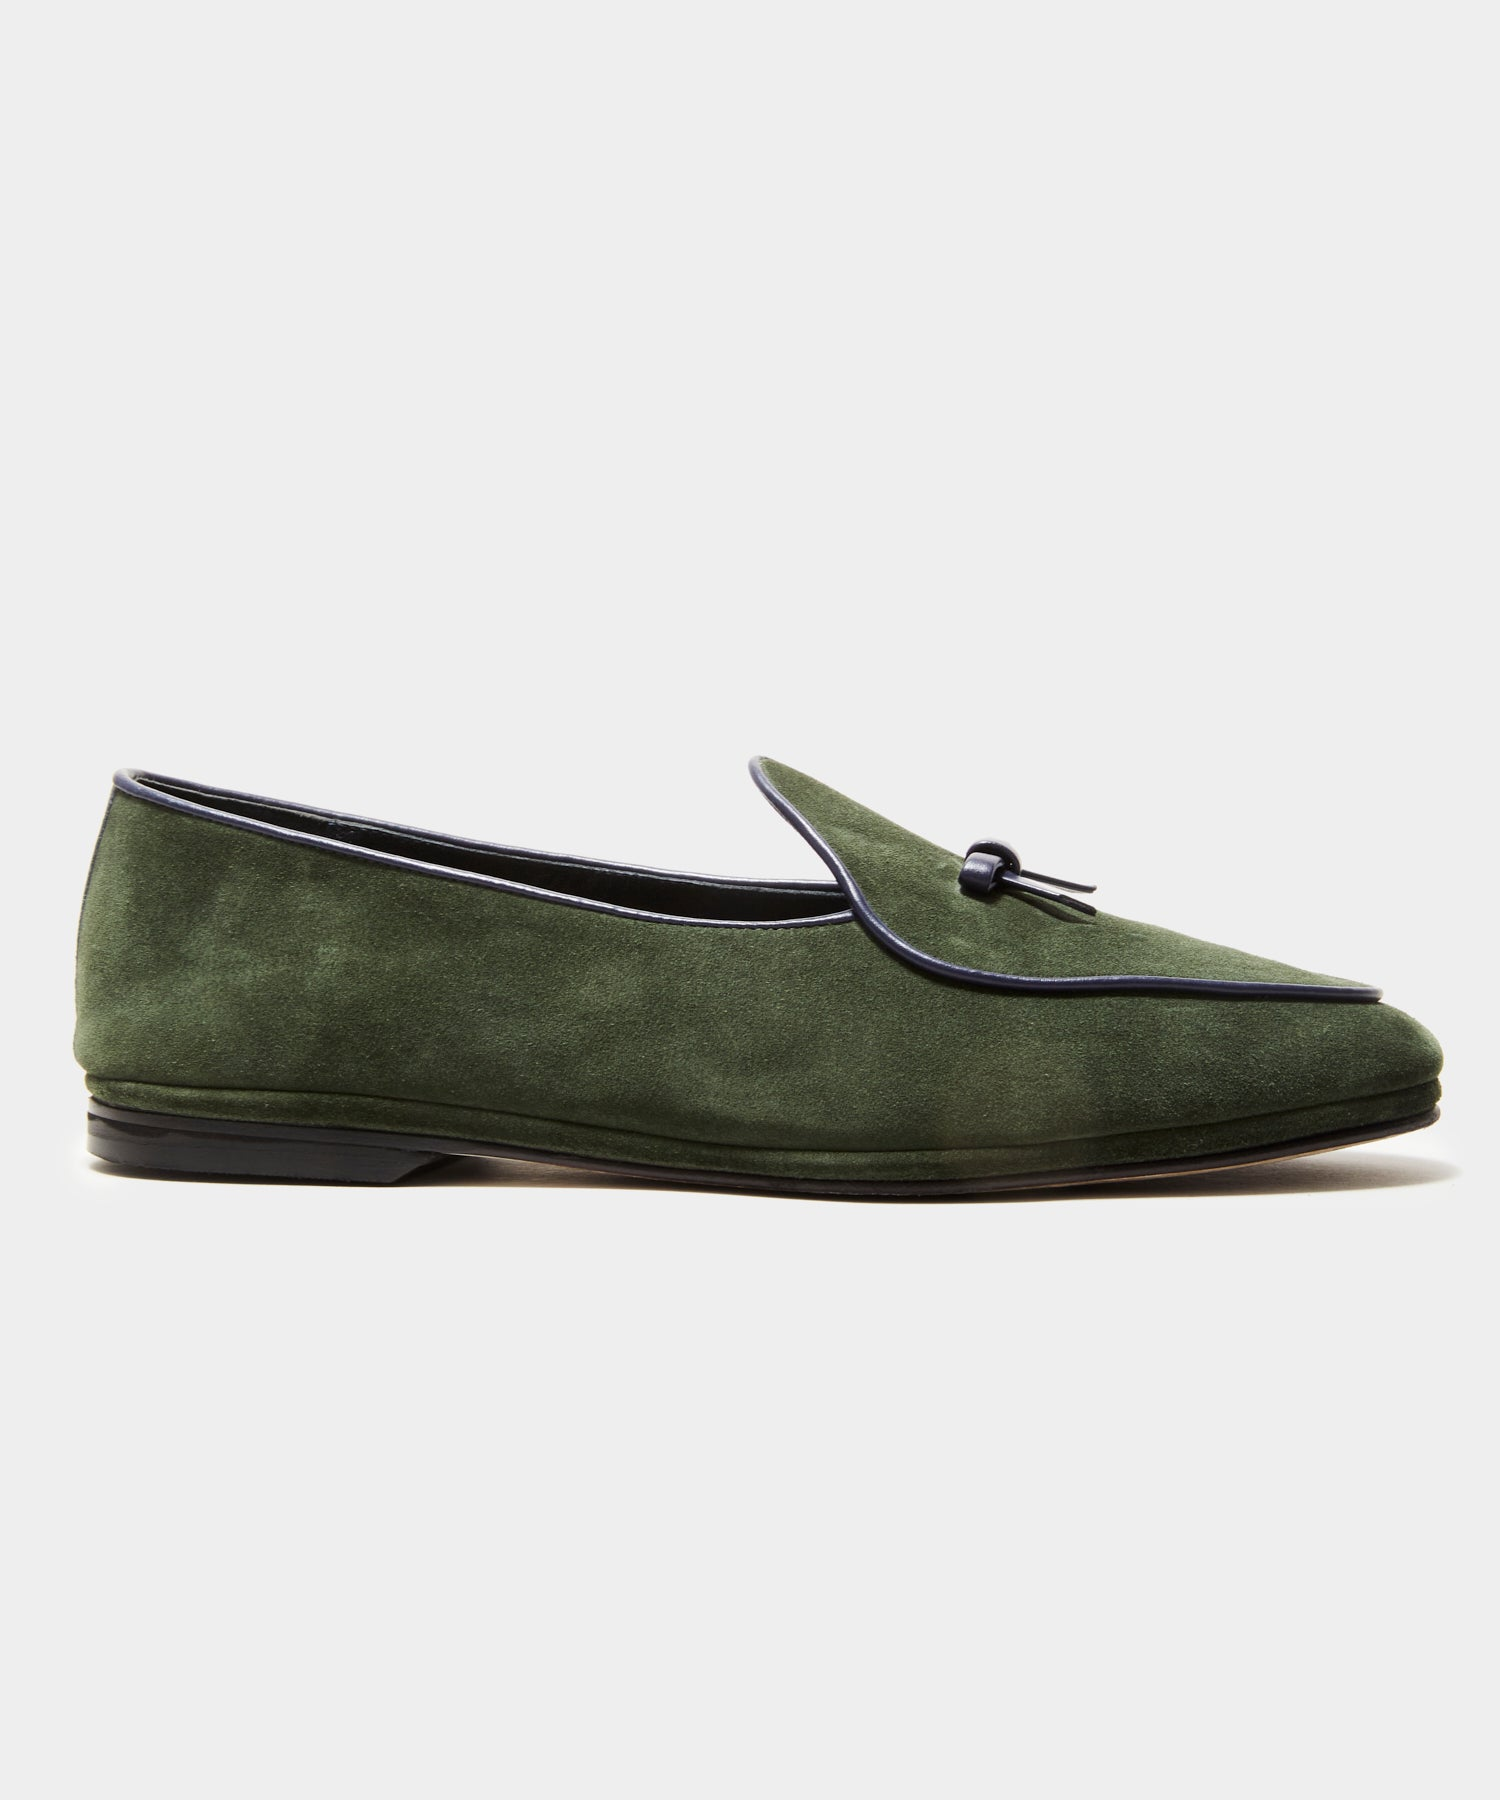 TS x Rubinacci Exclusive Marphy Loafer Velour in Racing Green